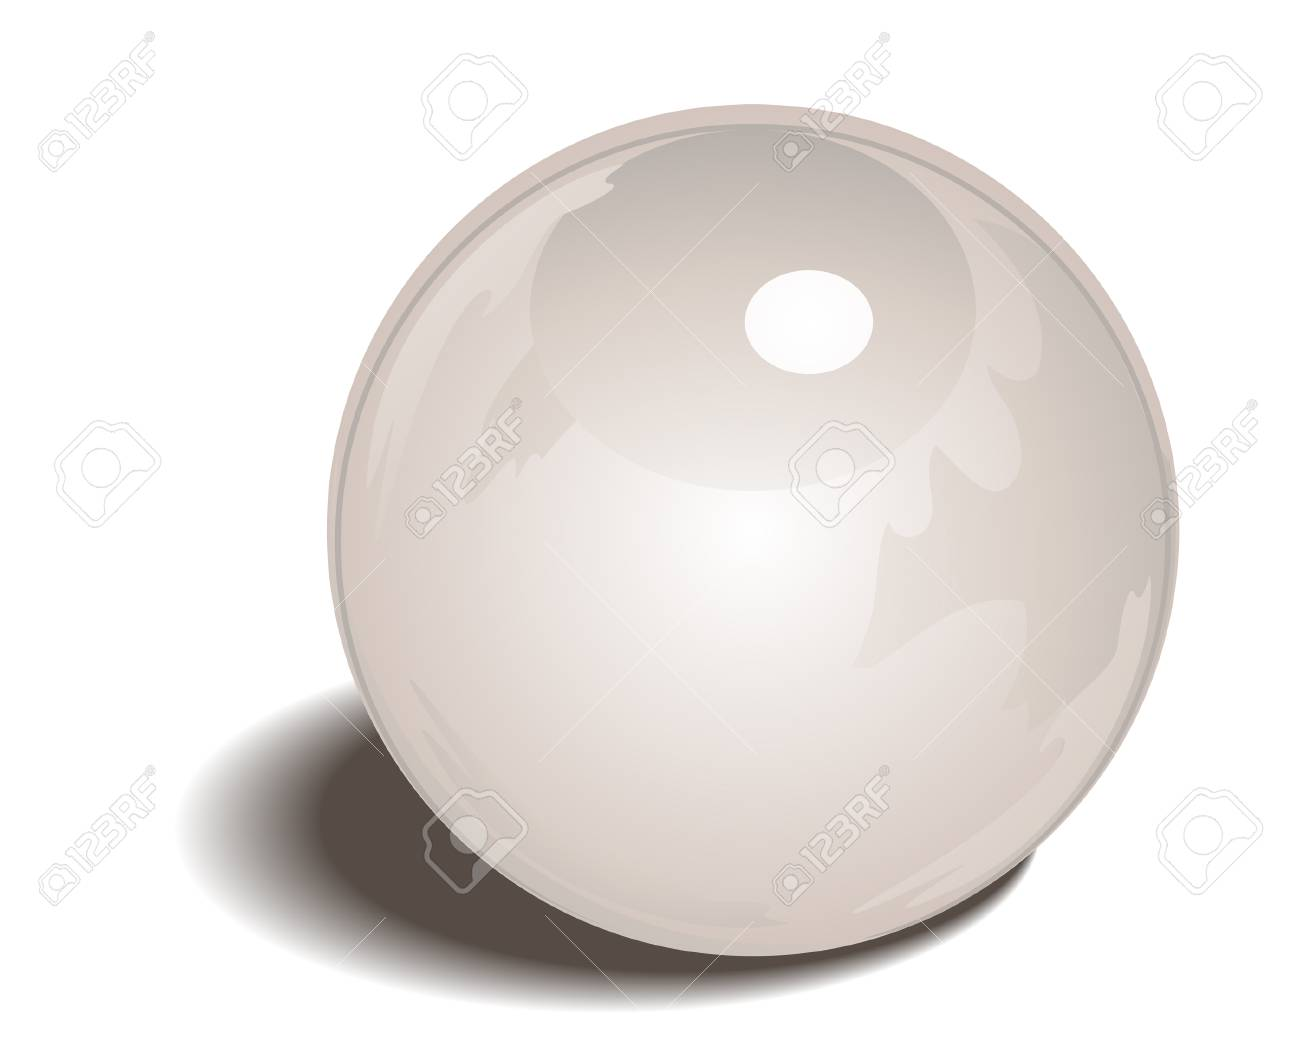 Pearl Birthstone with Clipping Path Stock Vector - 4211404